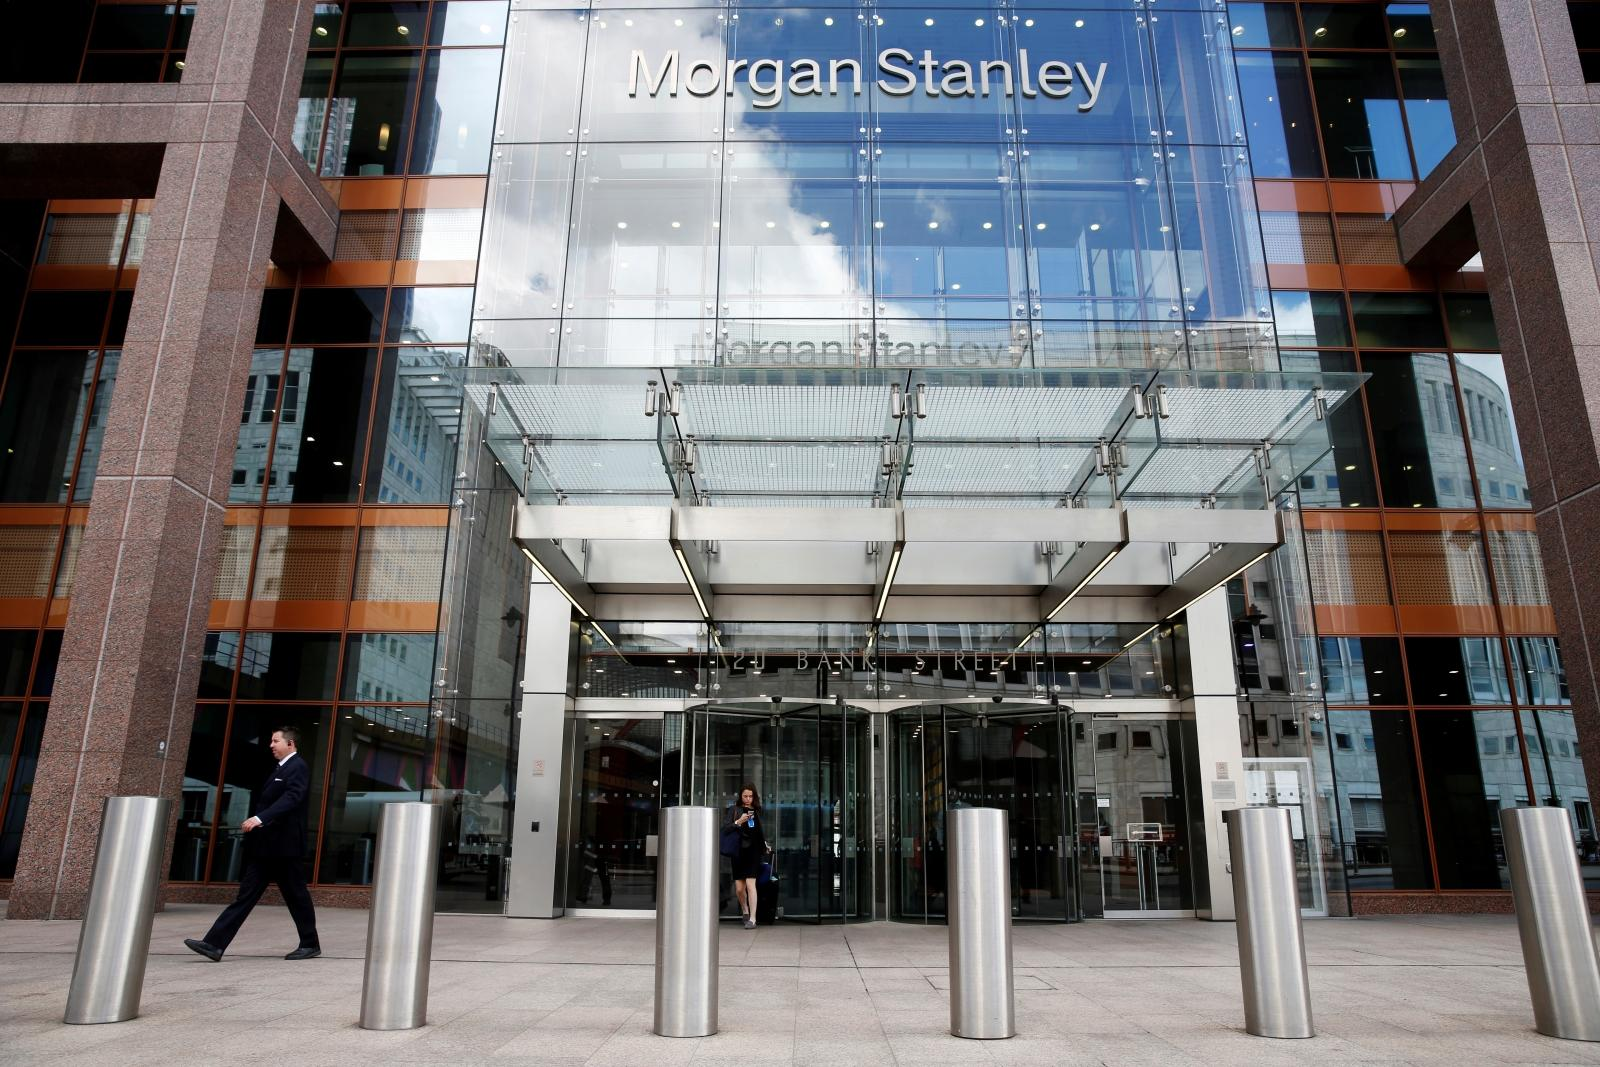 Morgan Stanley and Citigroup to shift many jobs outside the UK post Brexit – report